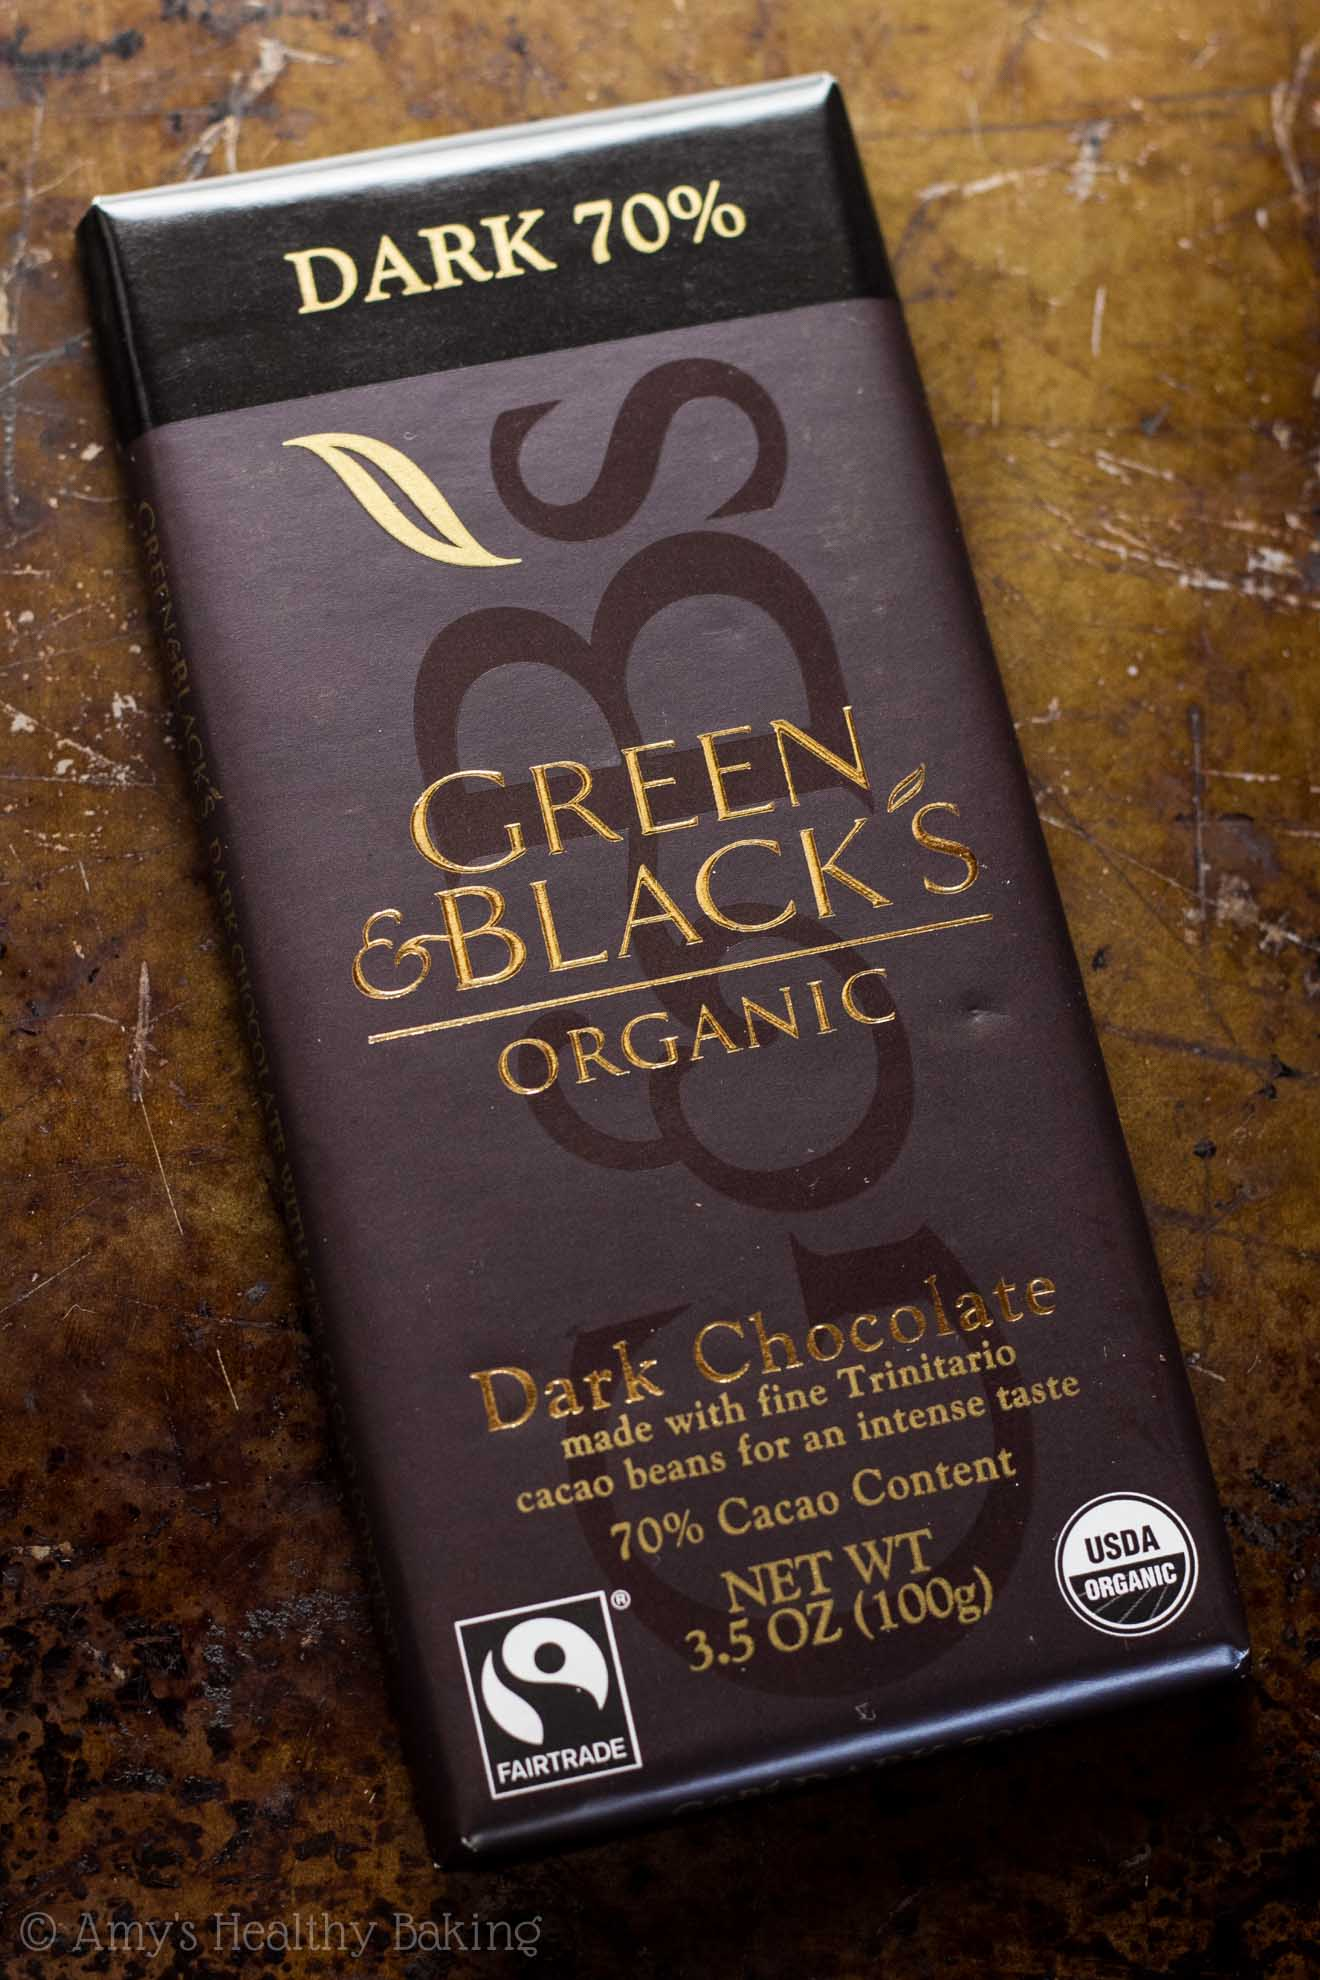 GREEN & BLACK'S ORGANIC 70% Dark Chocolate